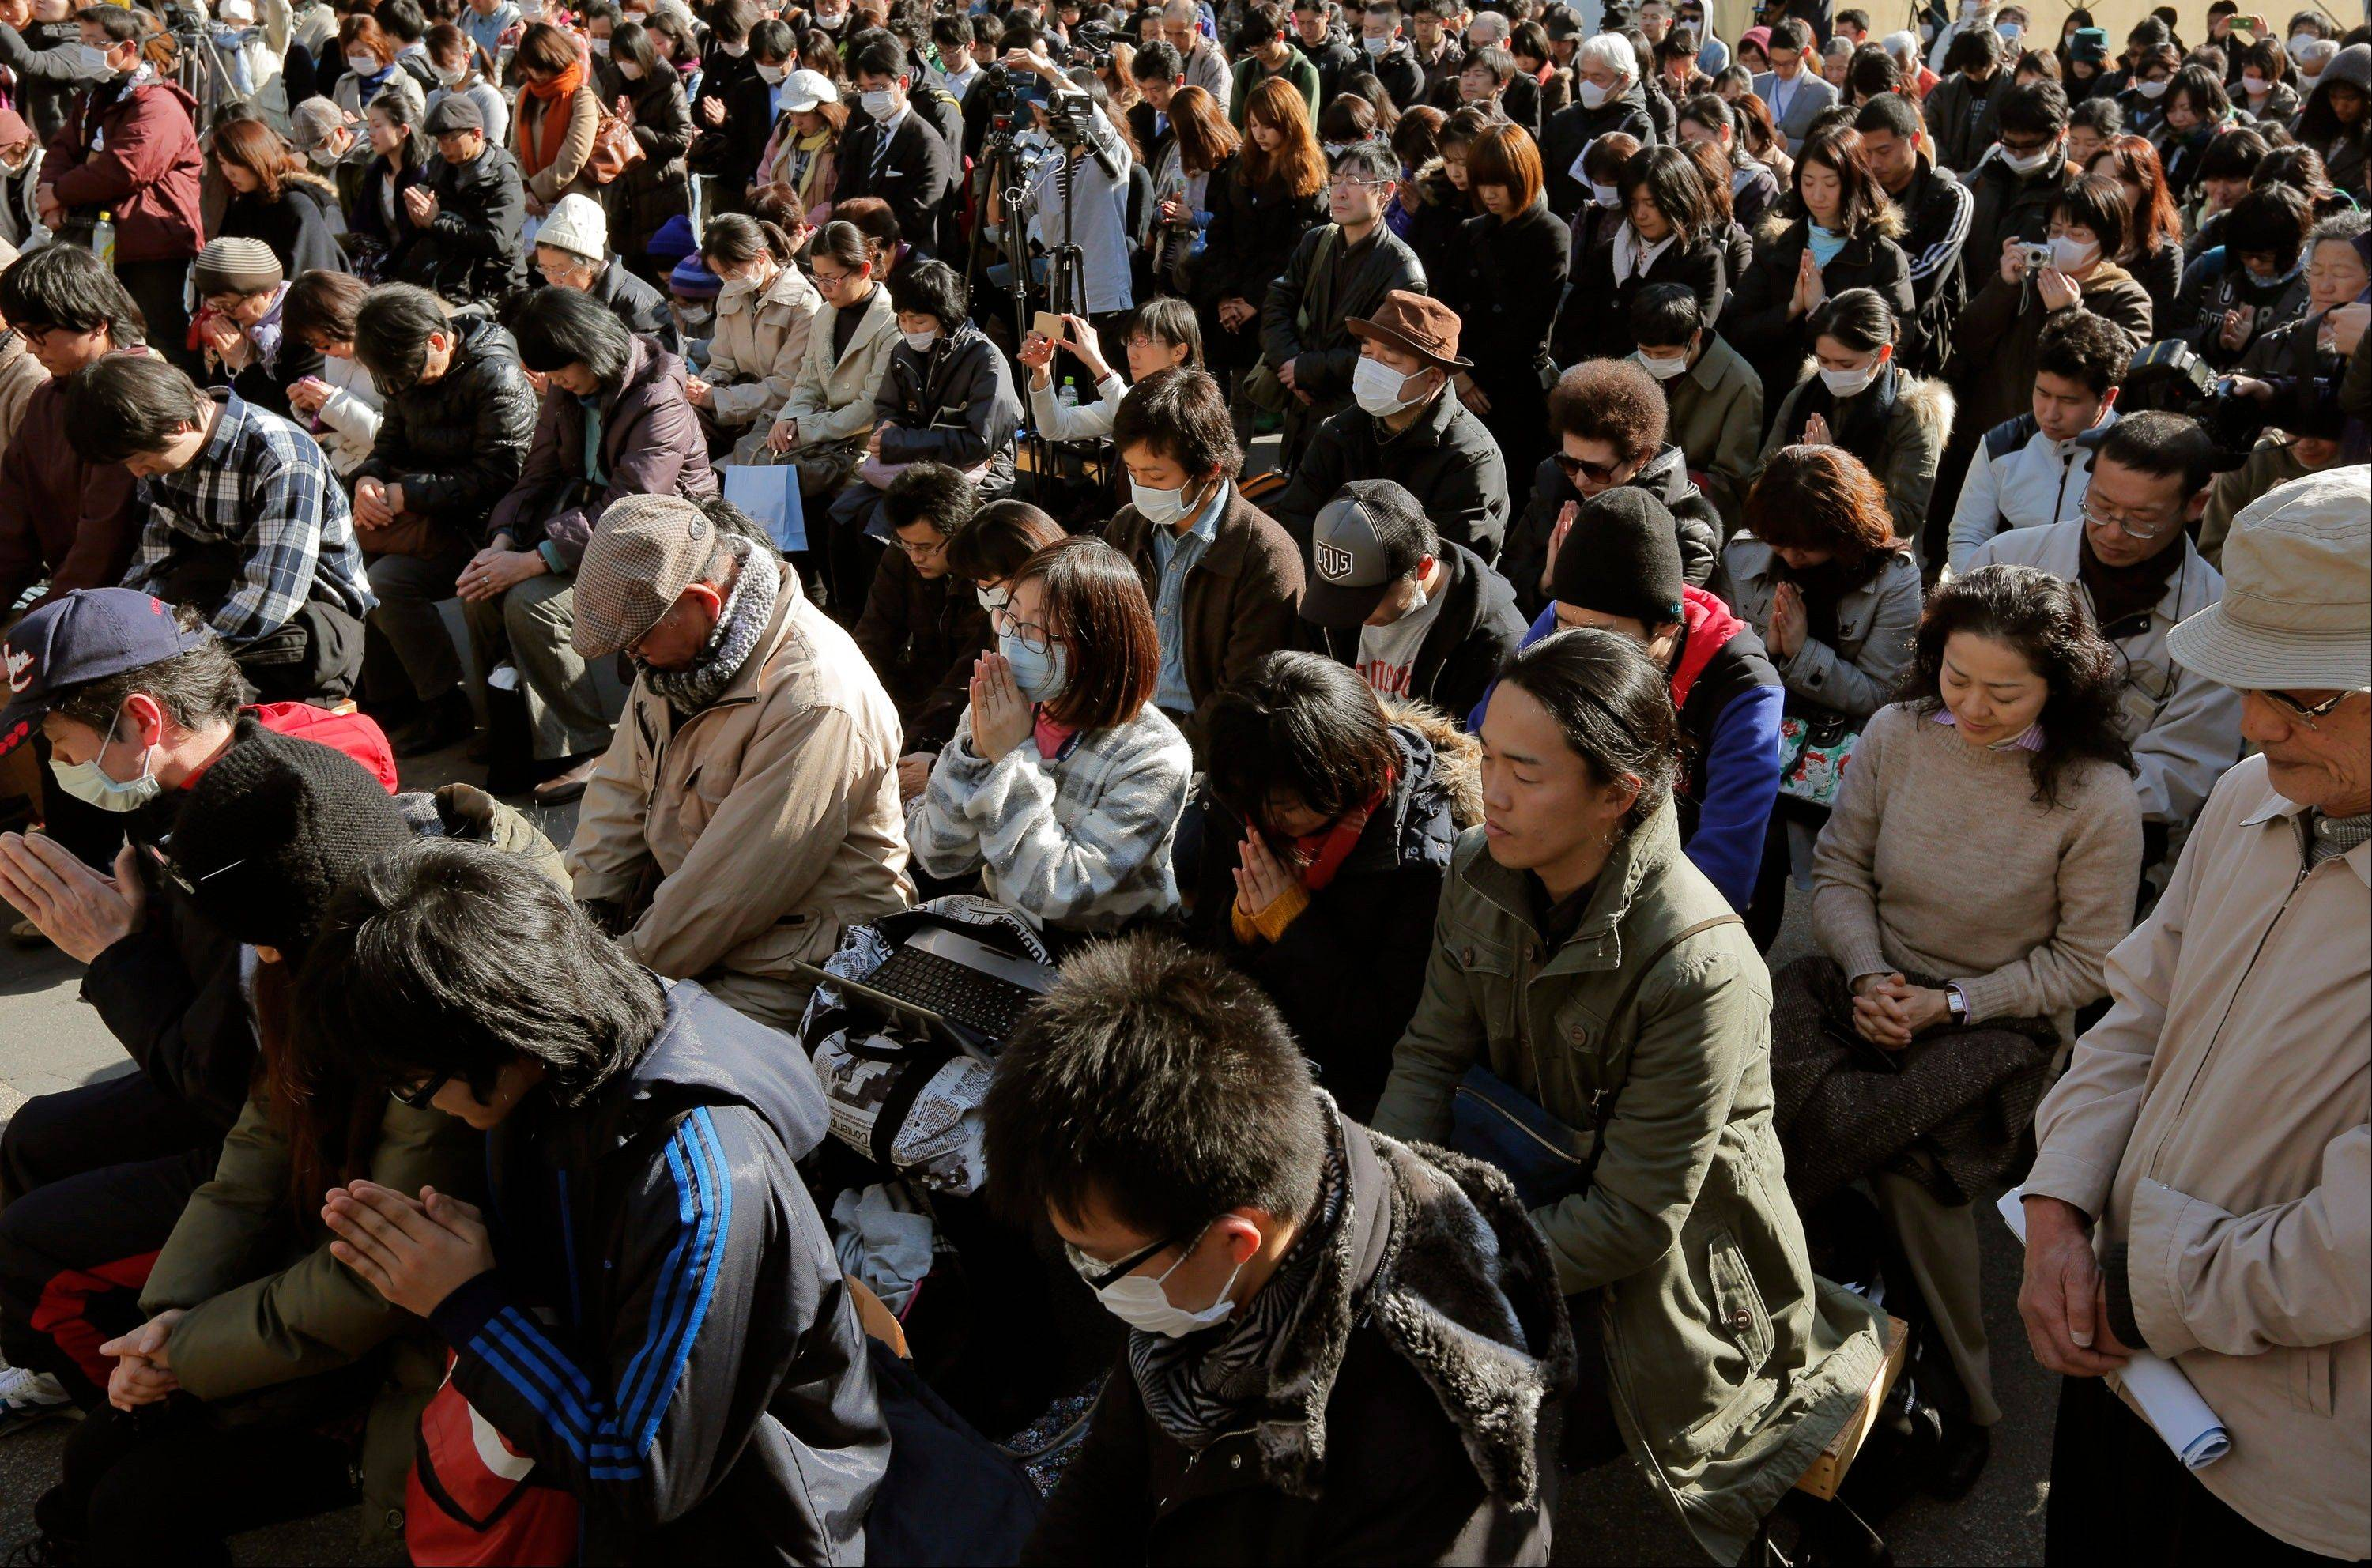 People observe a moment of silence for the victims of the March 11, 2011 earthquake and tsunami during an event at a park in Tokyo, Monday, March 11, 2013.